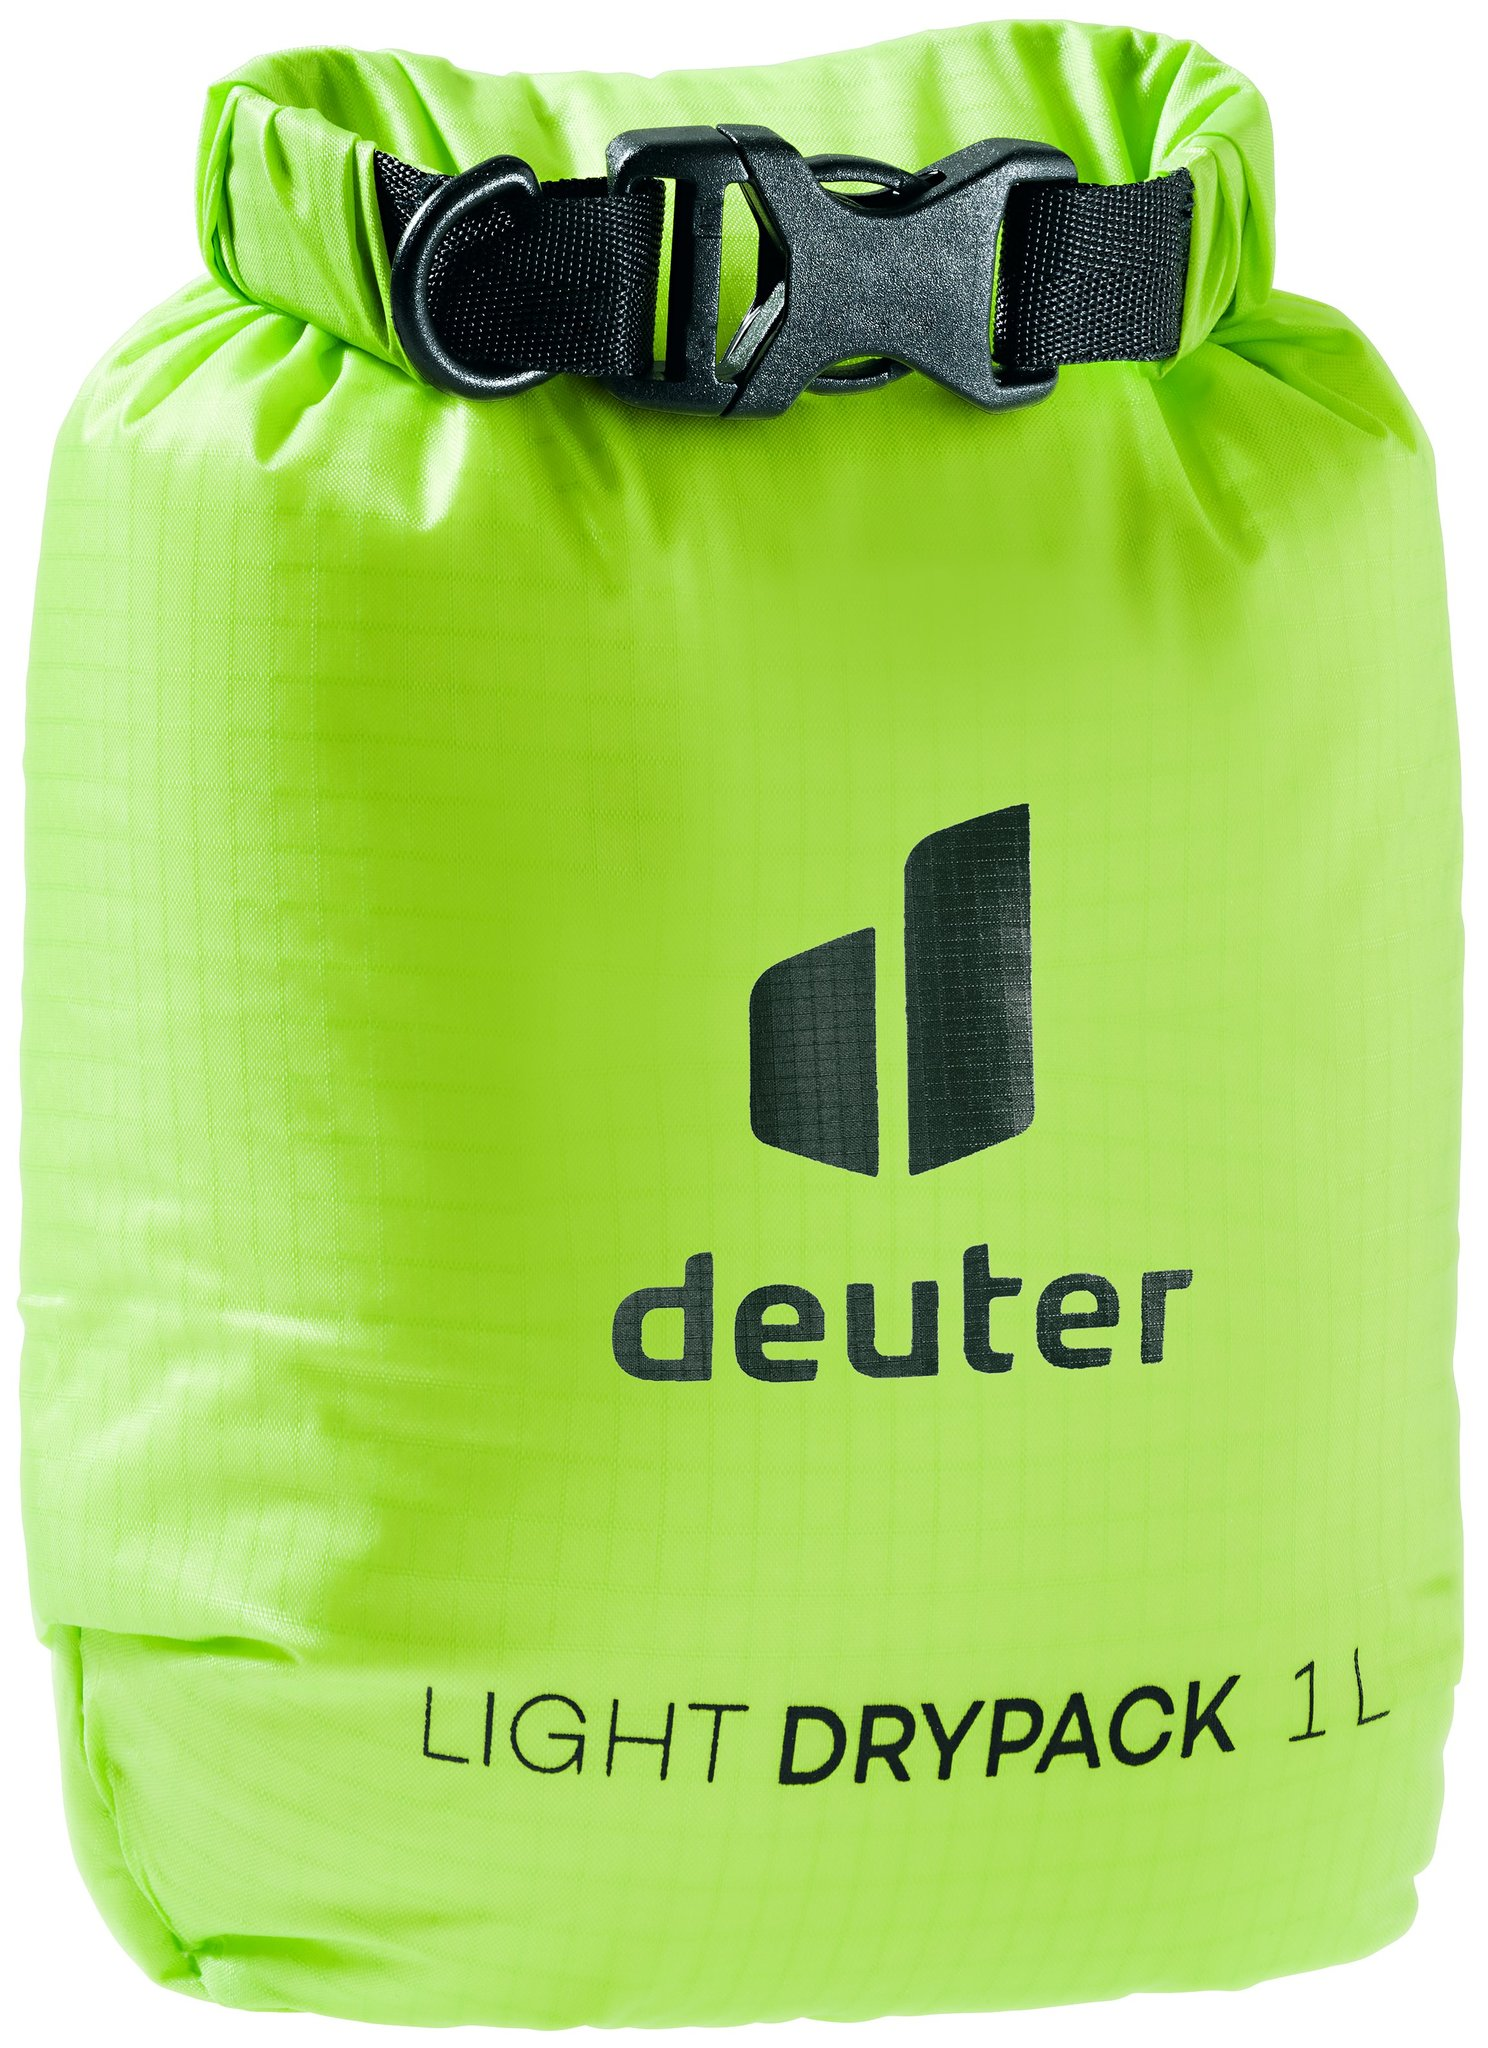 Новинки 2020 Гермомешок Deuter Light Drypack 1 0d87776500e5bce80c2737809d40579e.jpeg